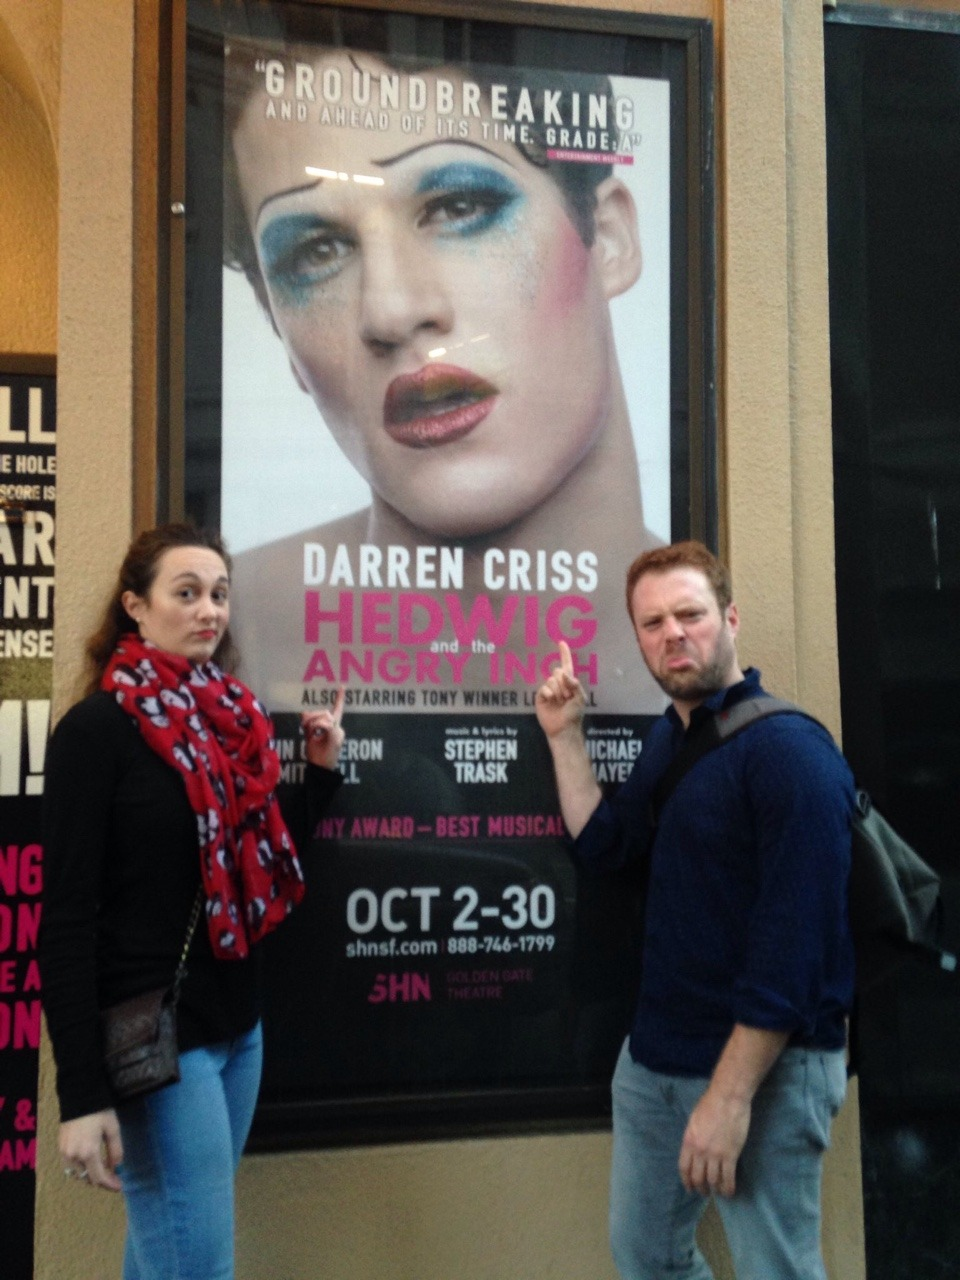 "hedwigandtheangryinch - Pics, gifs, media videos, curtain call videos, stage door videos, and posts of ""who saw Darren"" in Hedwig and the Angry Inch--SF and L.A. (Tour),  - Page 4 Tumblr_ofppzbvbRe1ubd9qxo1_1280"